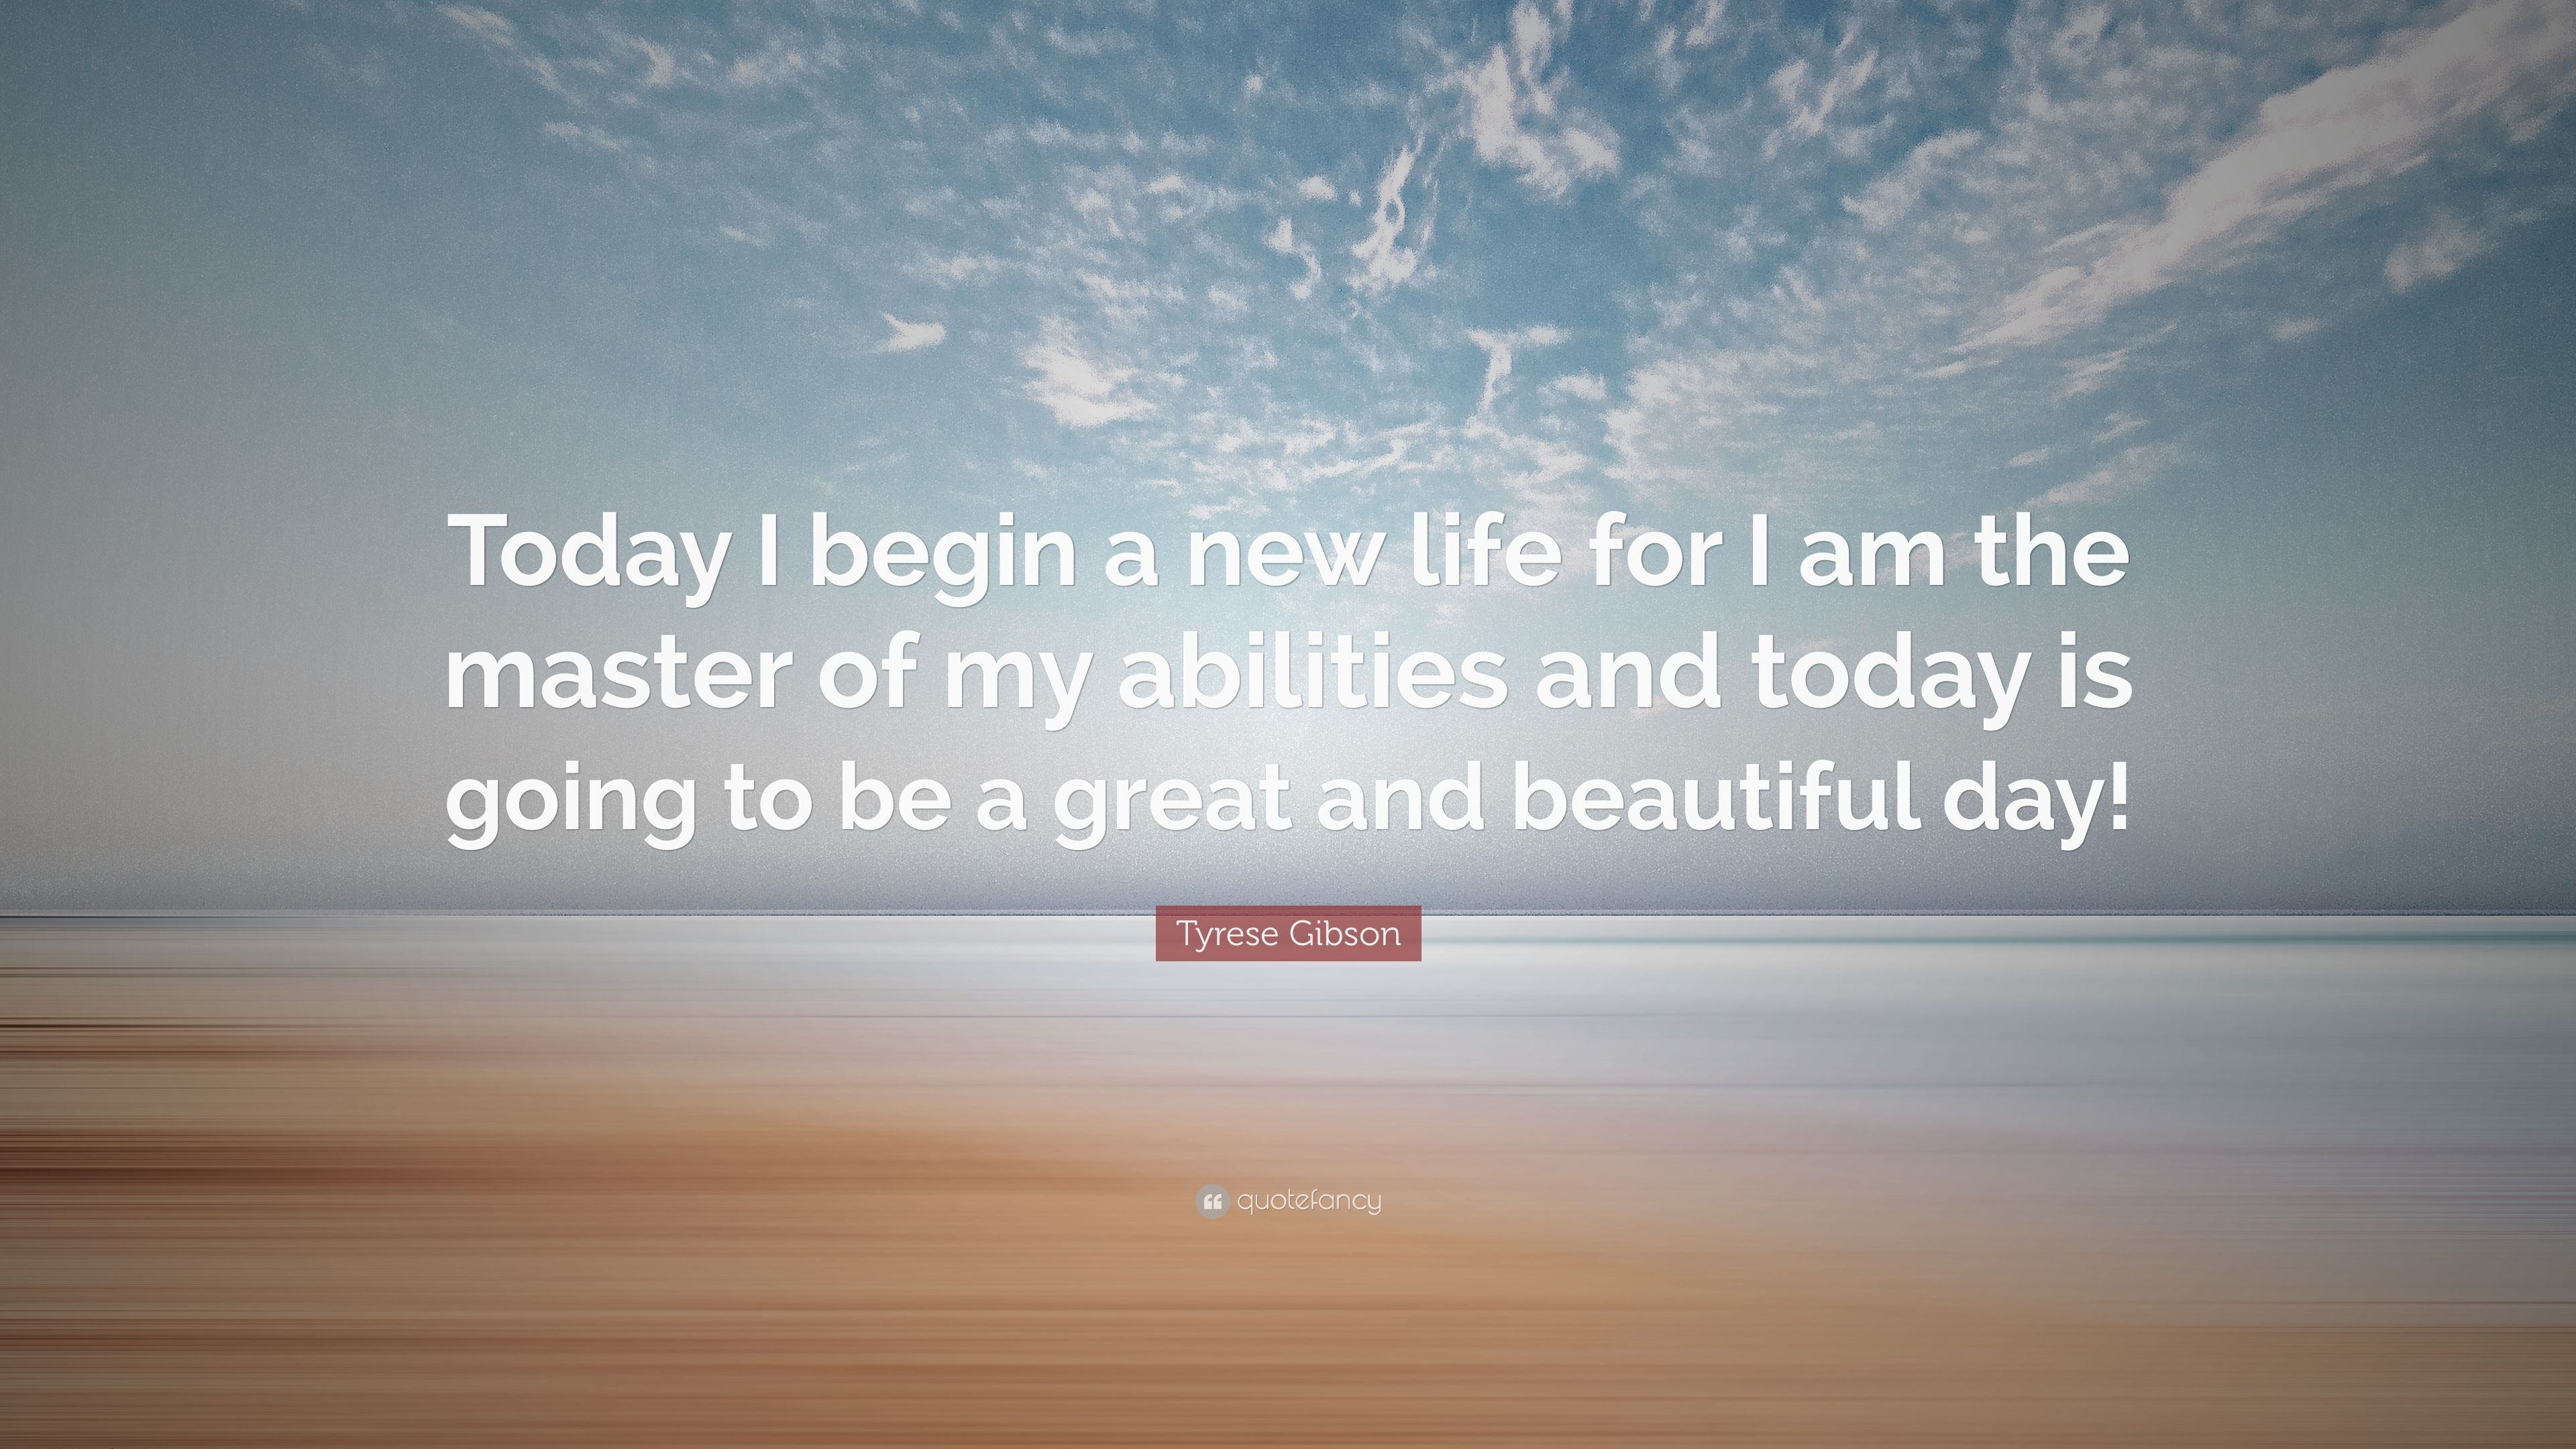 Tyrese Gibson Quote Today I Begin A New Life For I Am The Master